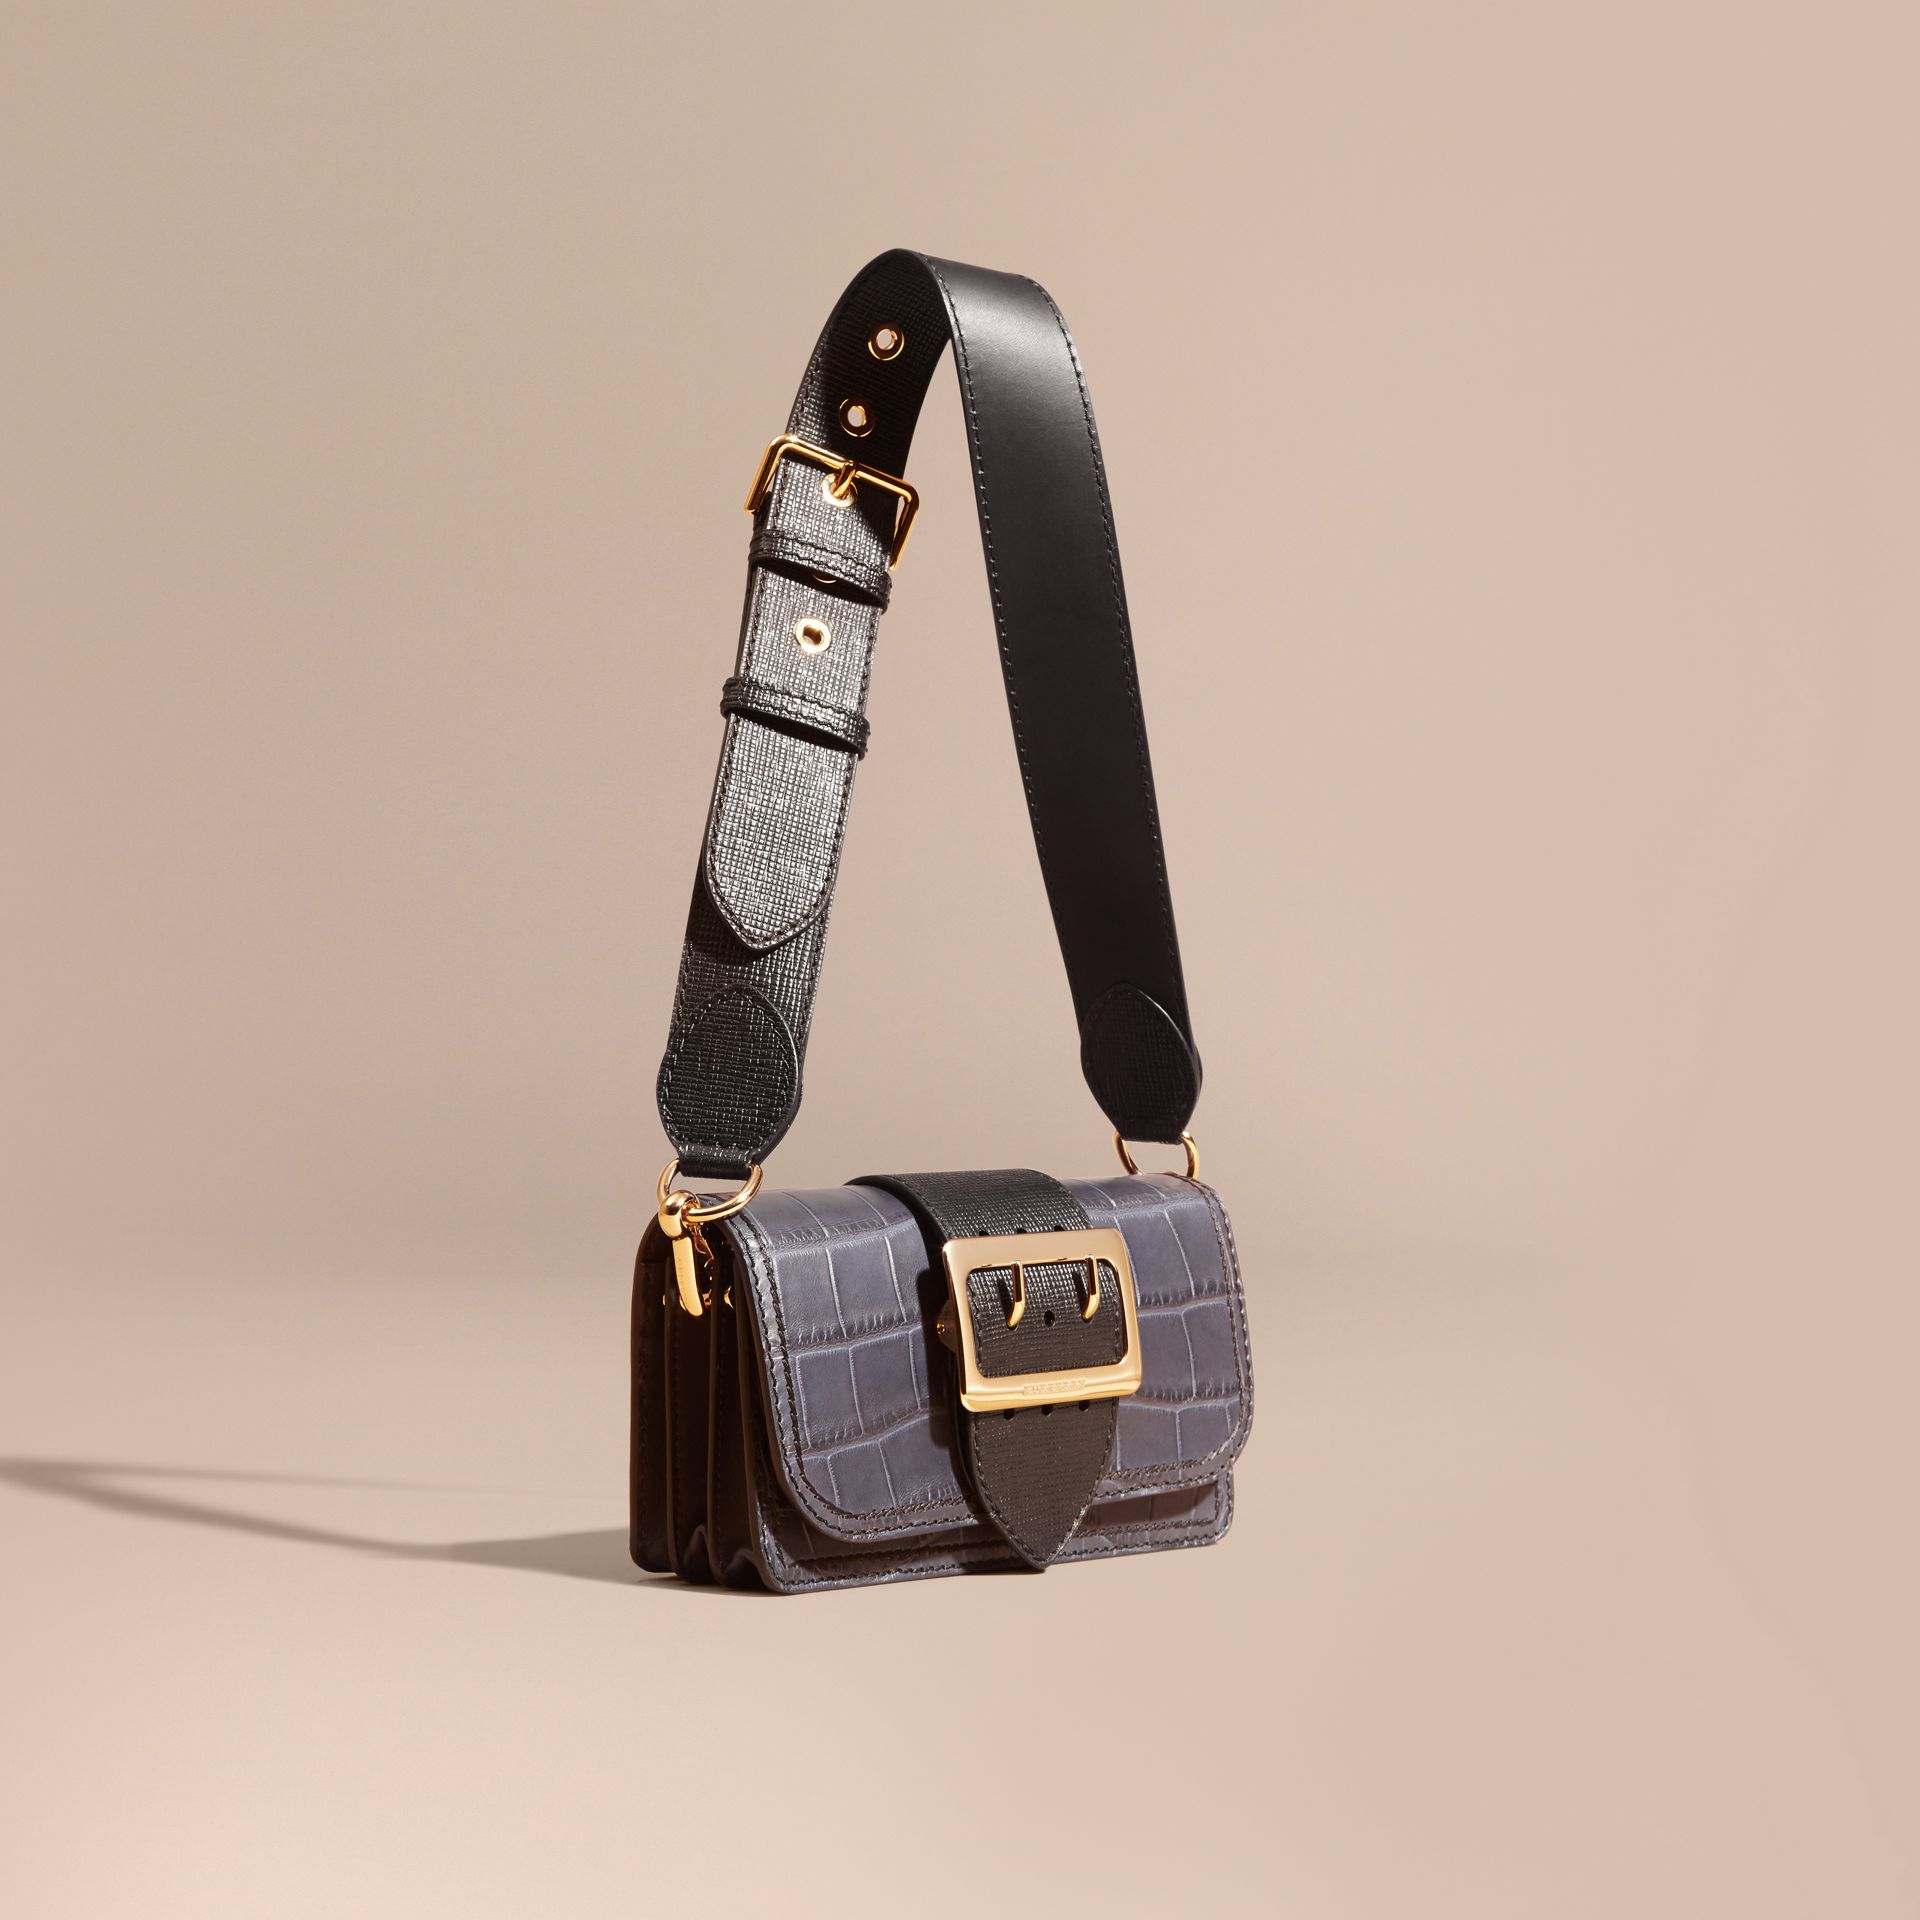 Navy / black The Small Buckle Bag in Alligator and Leather Navy / Black - gallery image 1